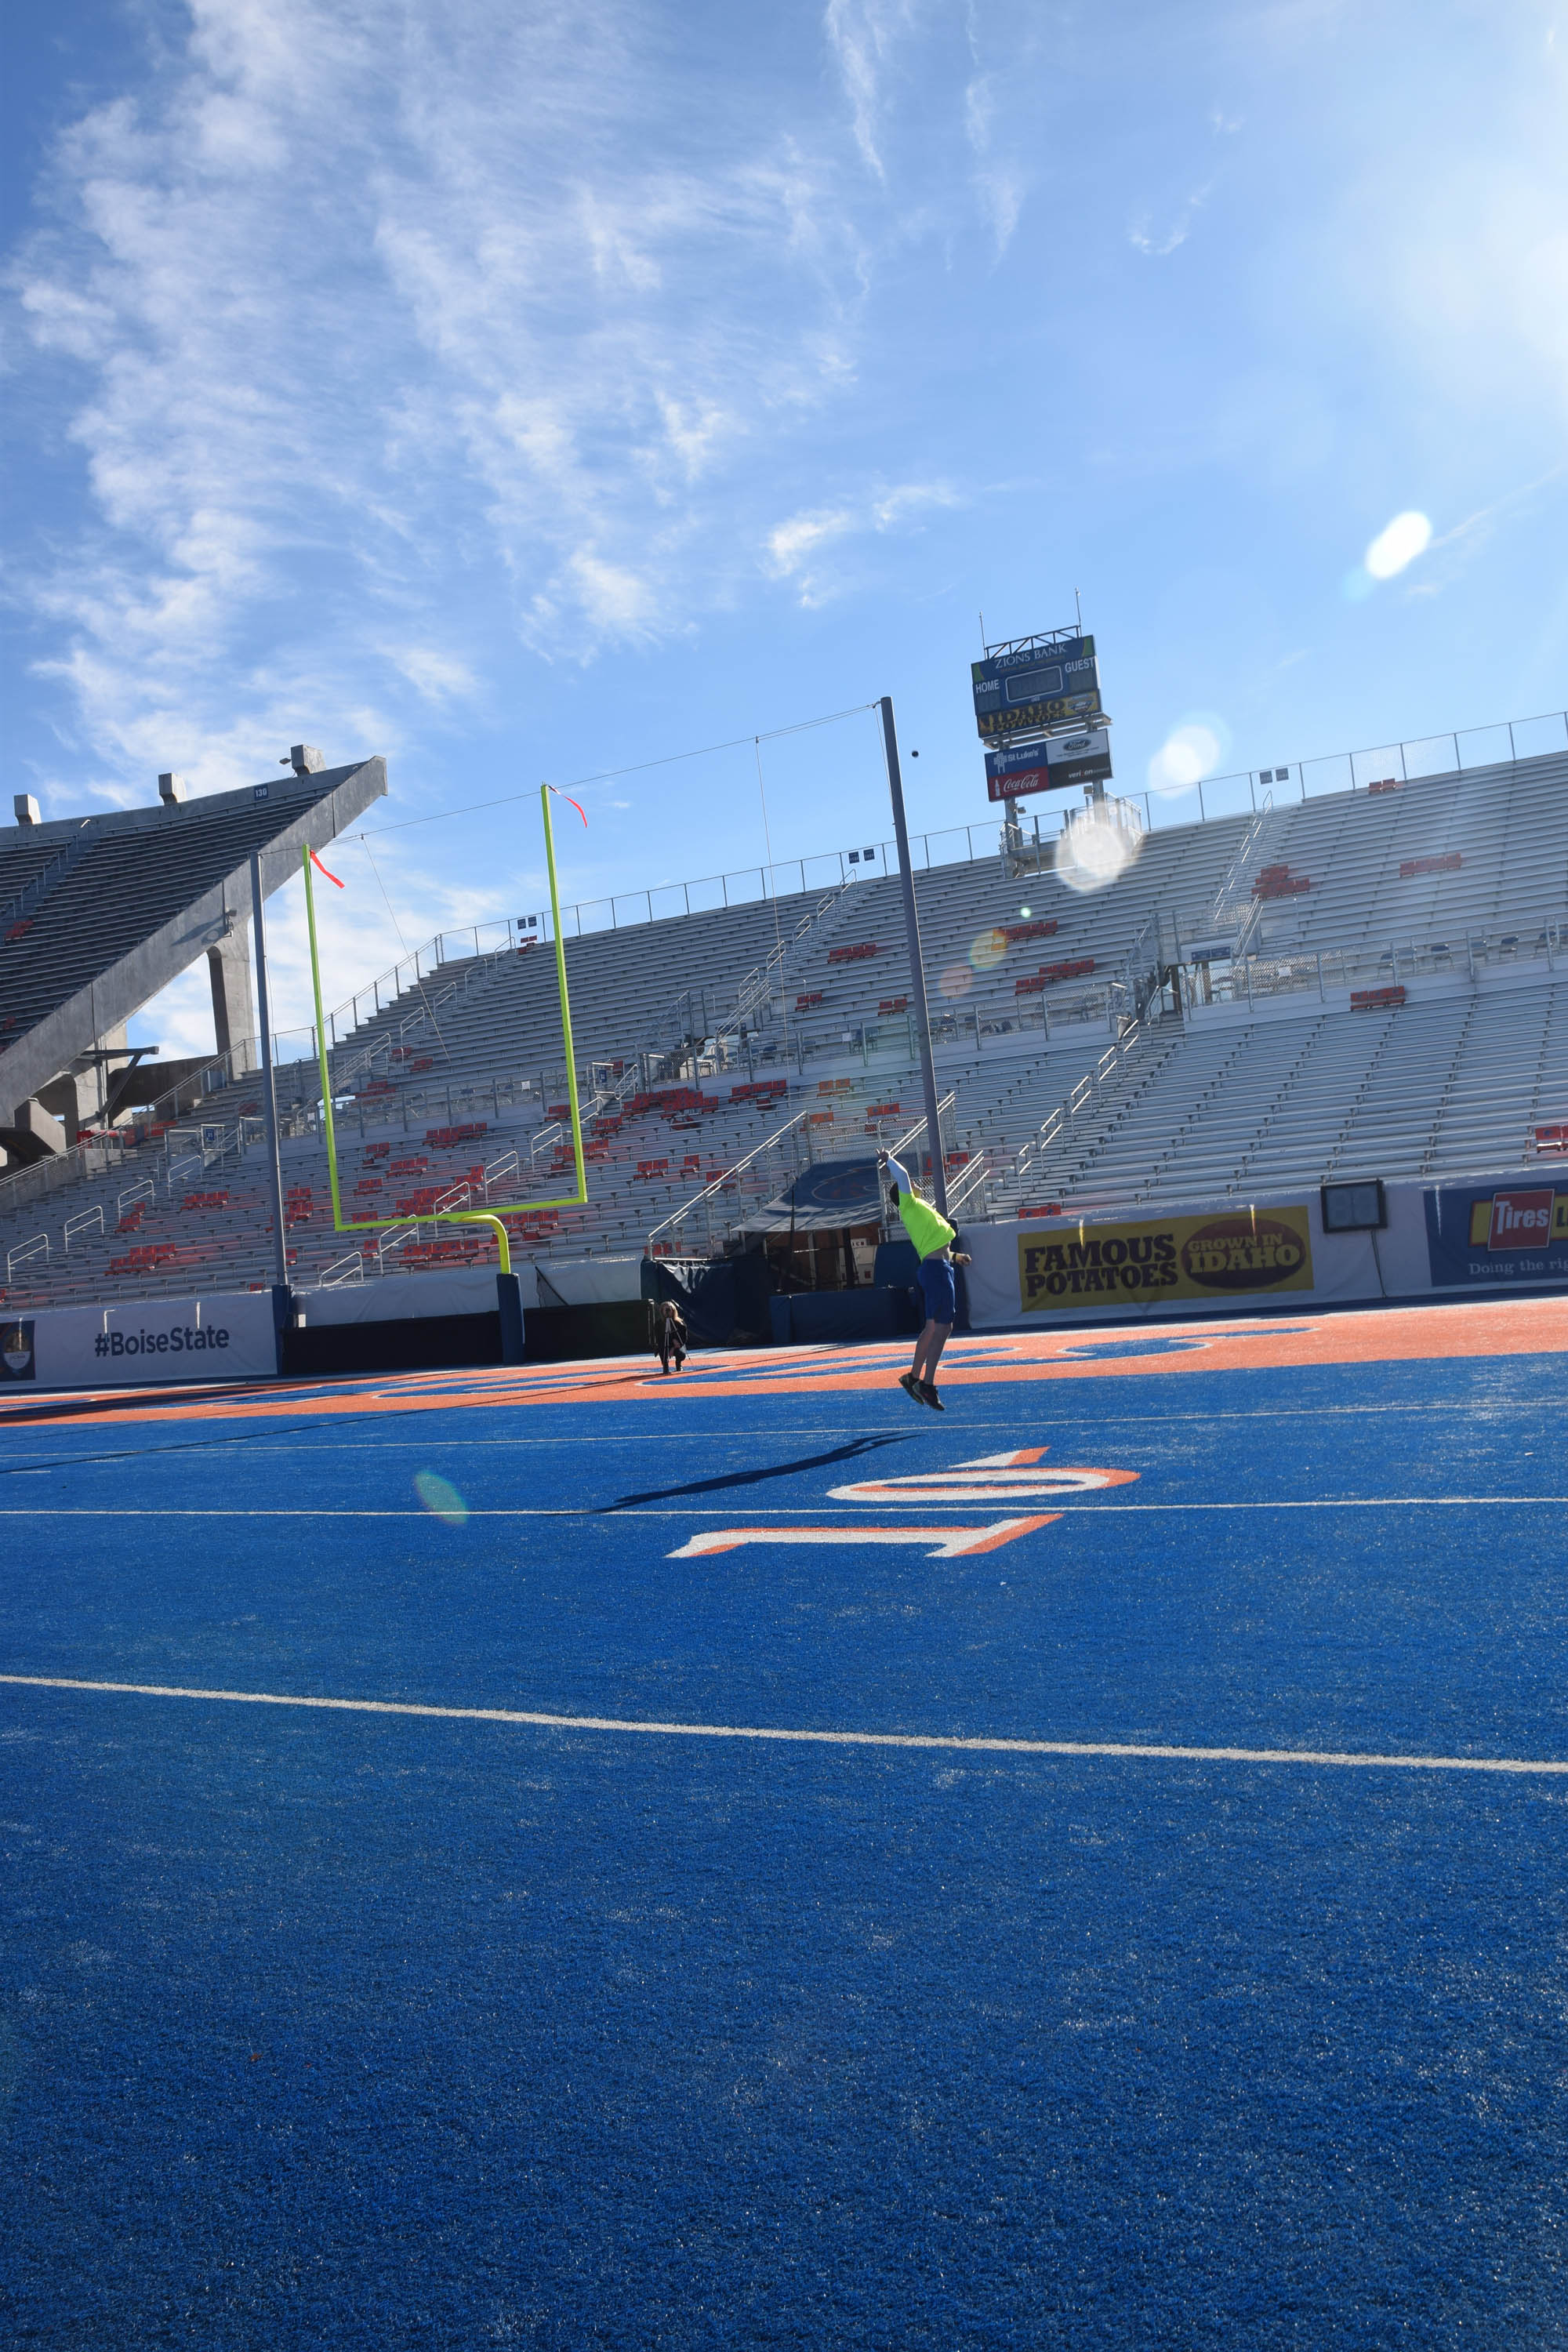 16-jumping-throw-endzone-view